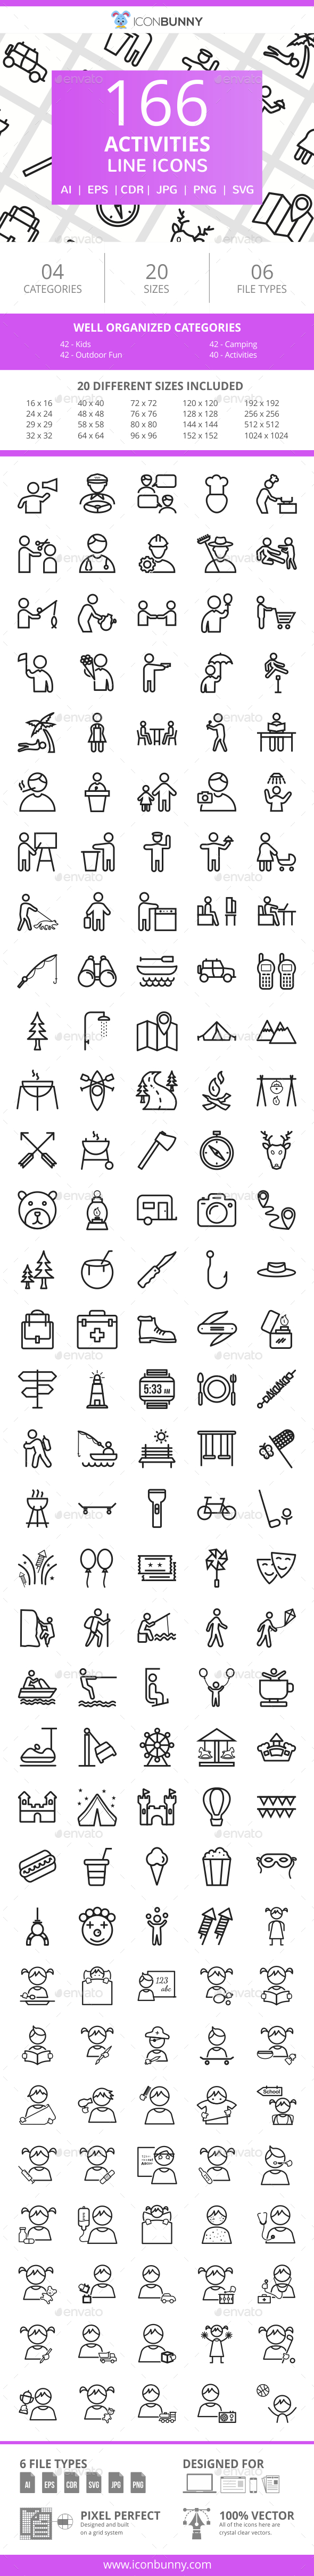 166 Activities Line Icons - Icons